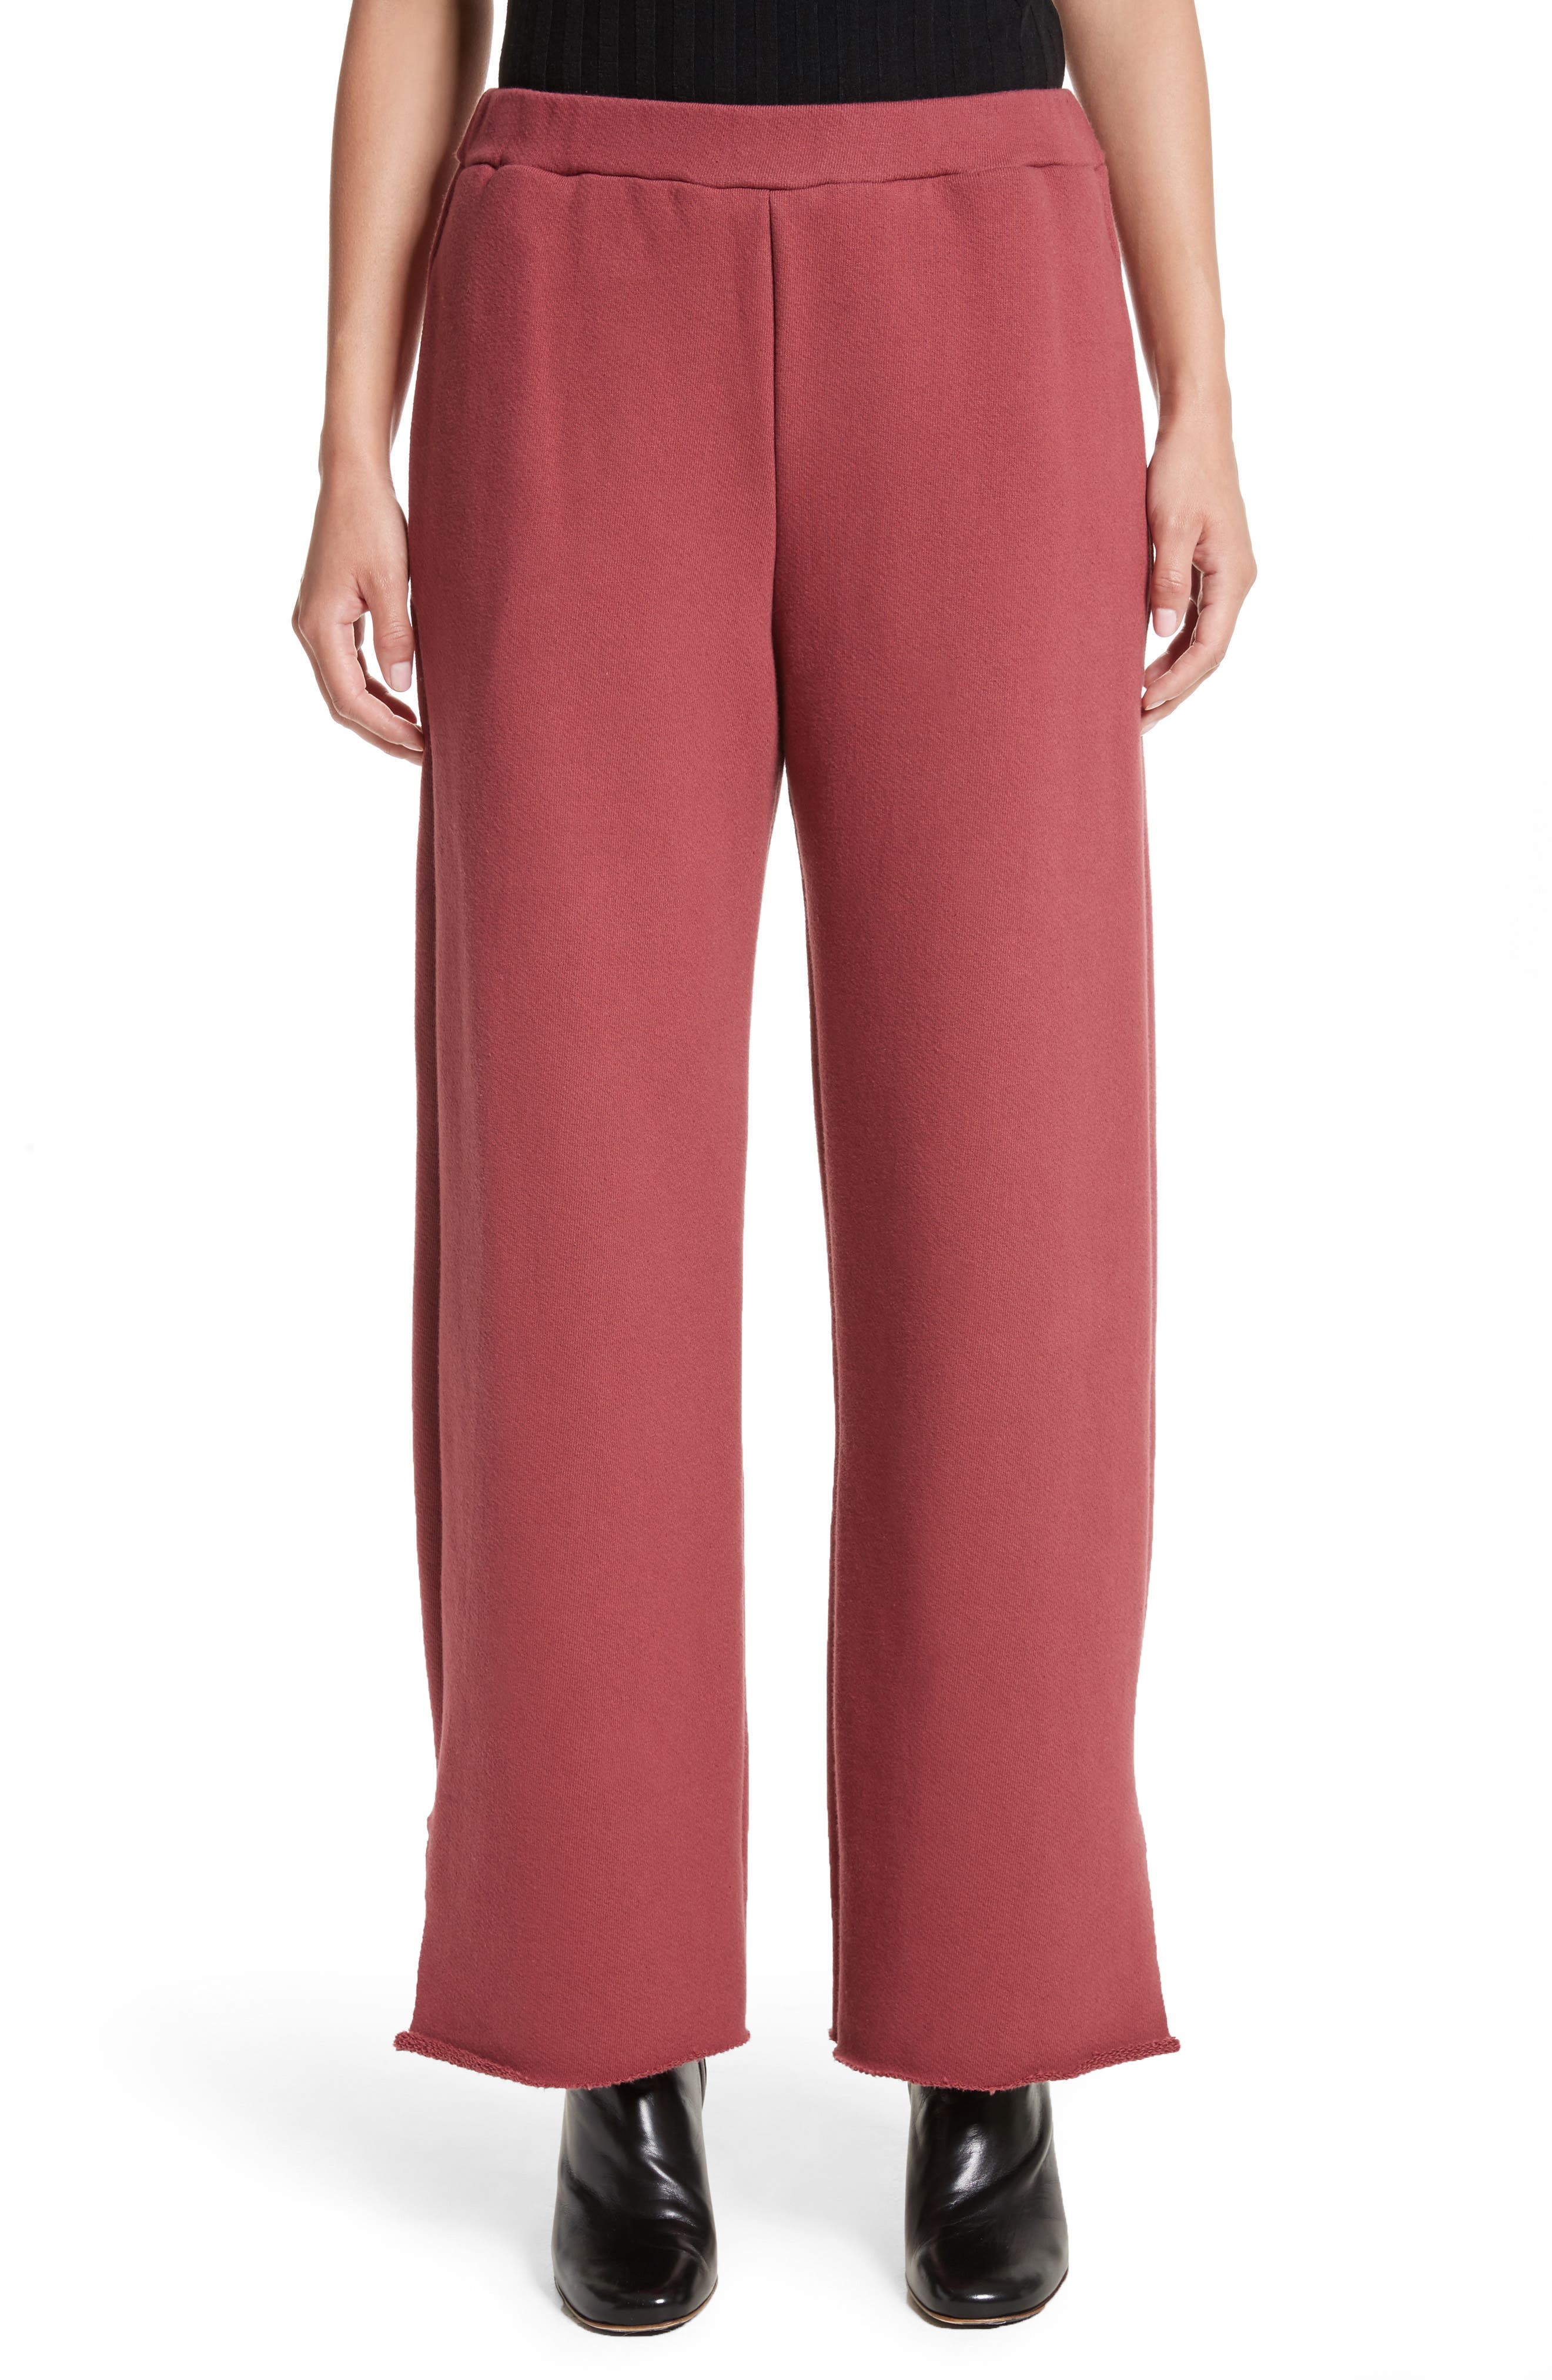 Canal French Terry Sweatpants,                         Main,                         color, Tegola Pink